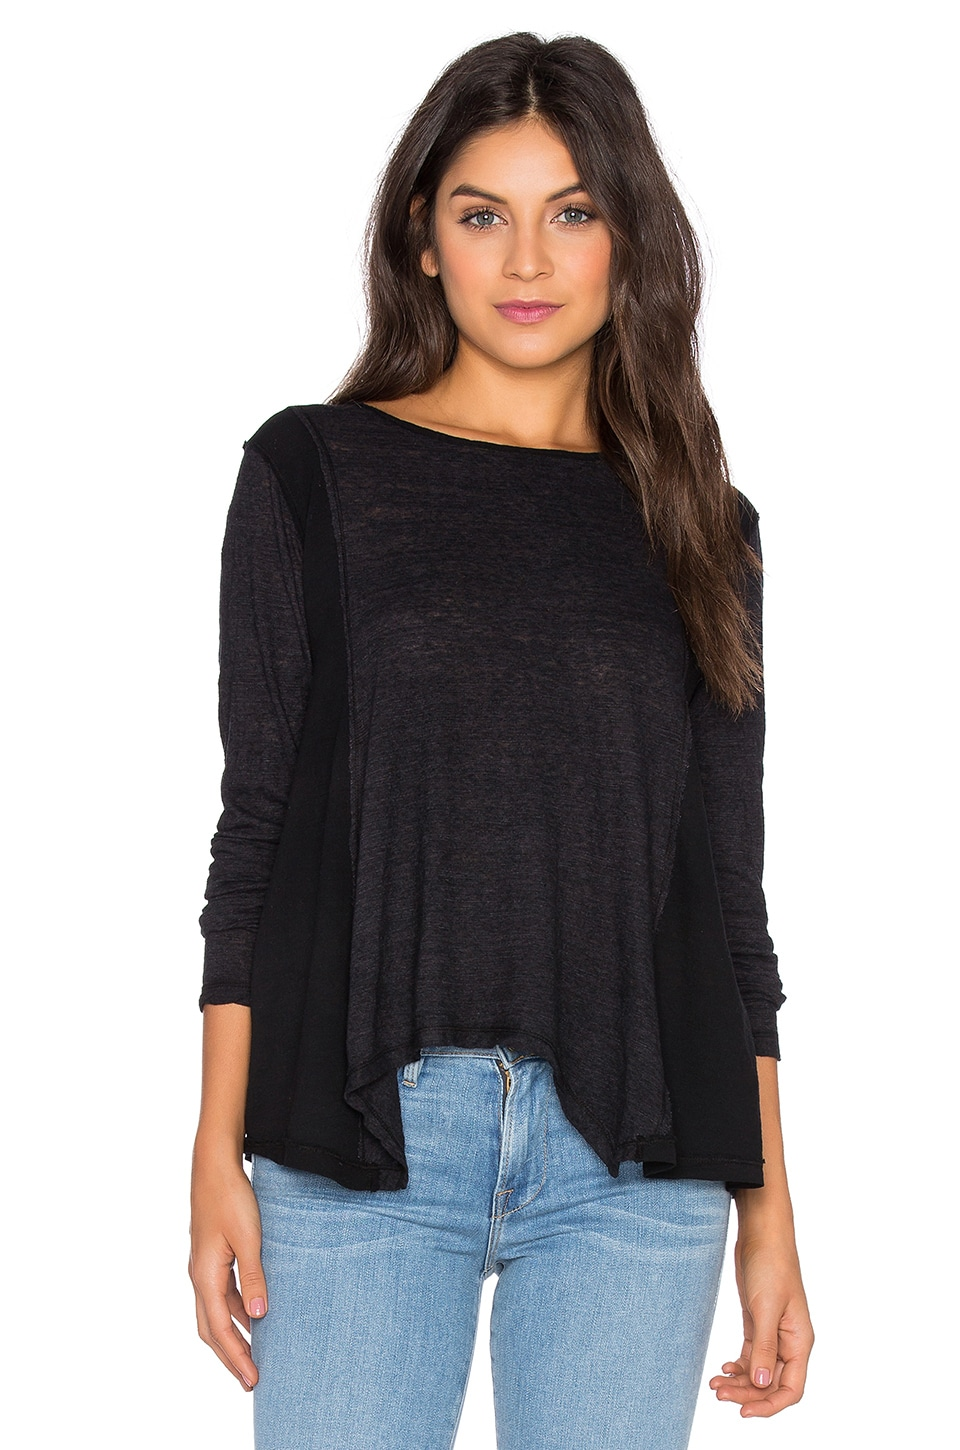 Heather Cotton & Gauze Long Sleeve Swing Top in Black